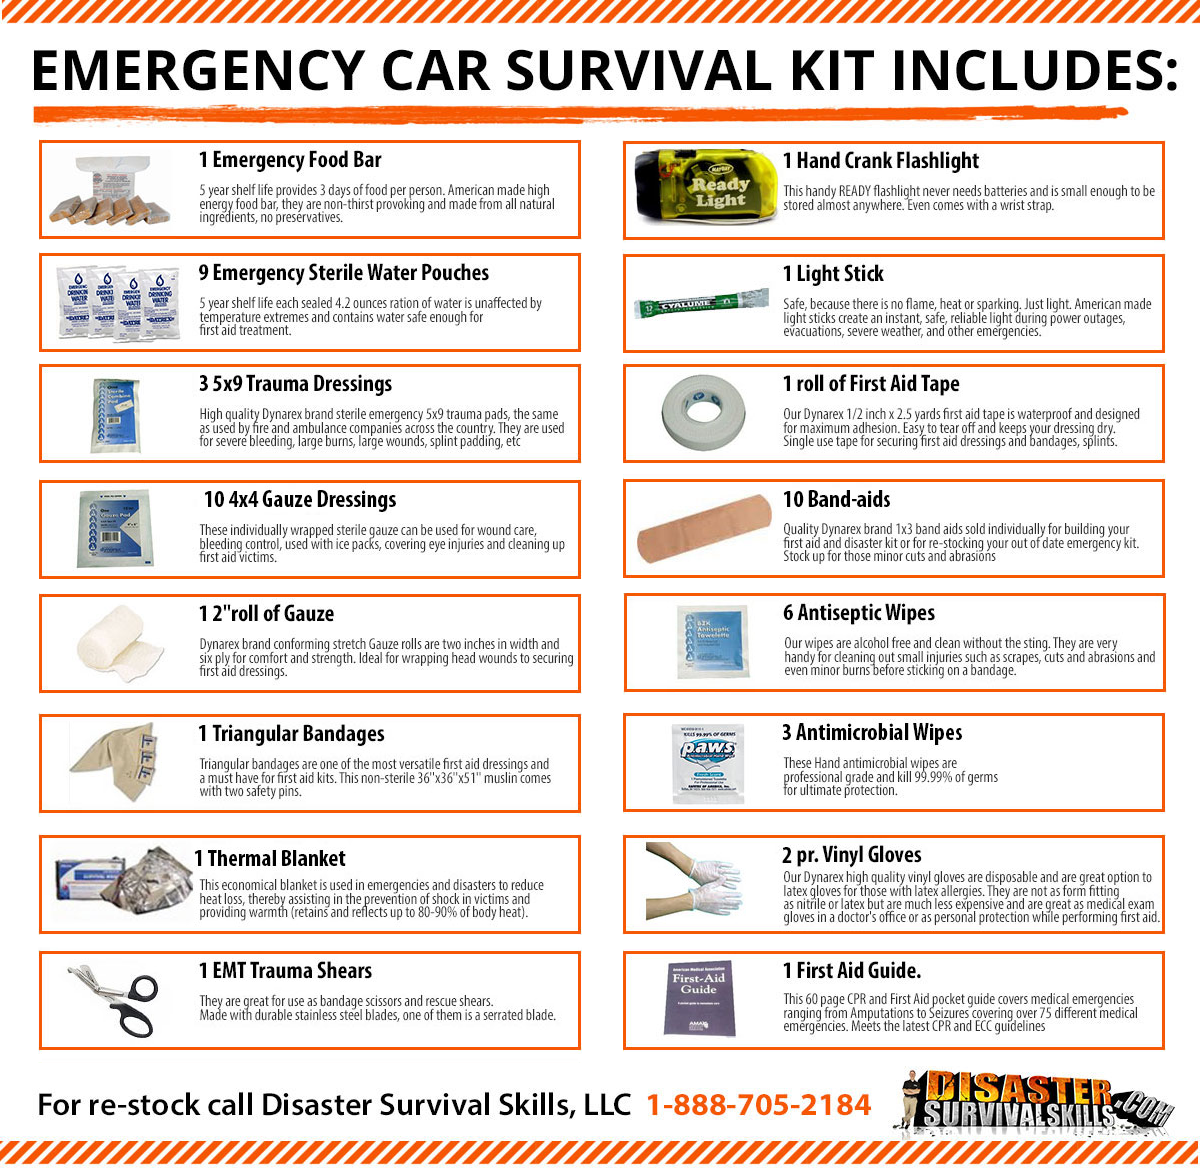 Car Survival Kit Content List